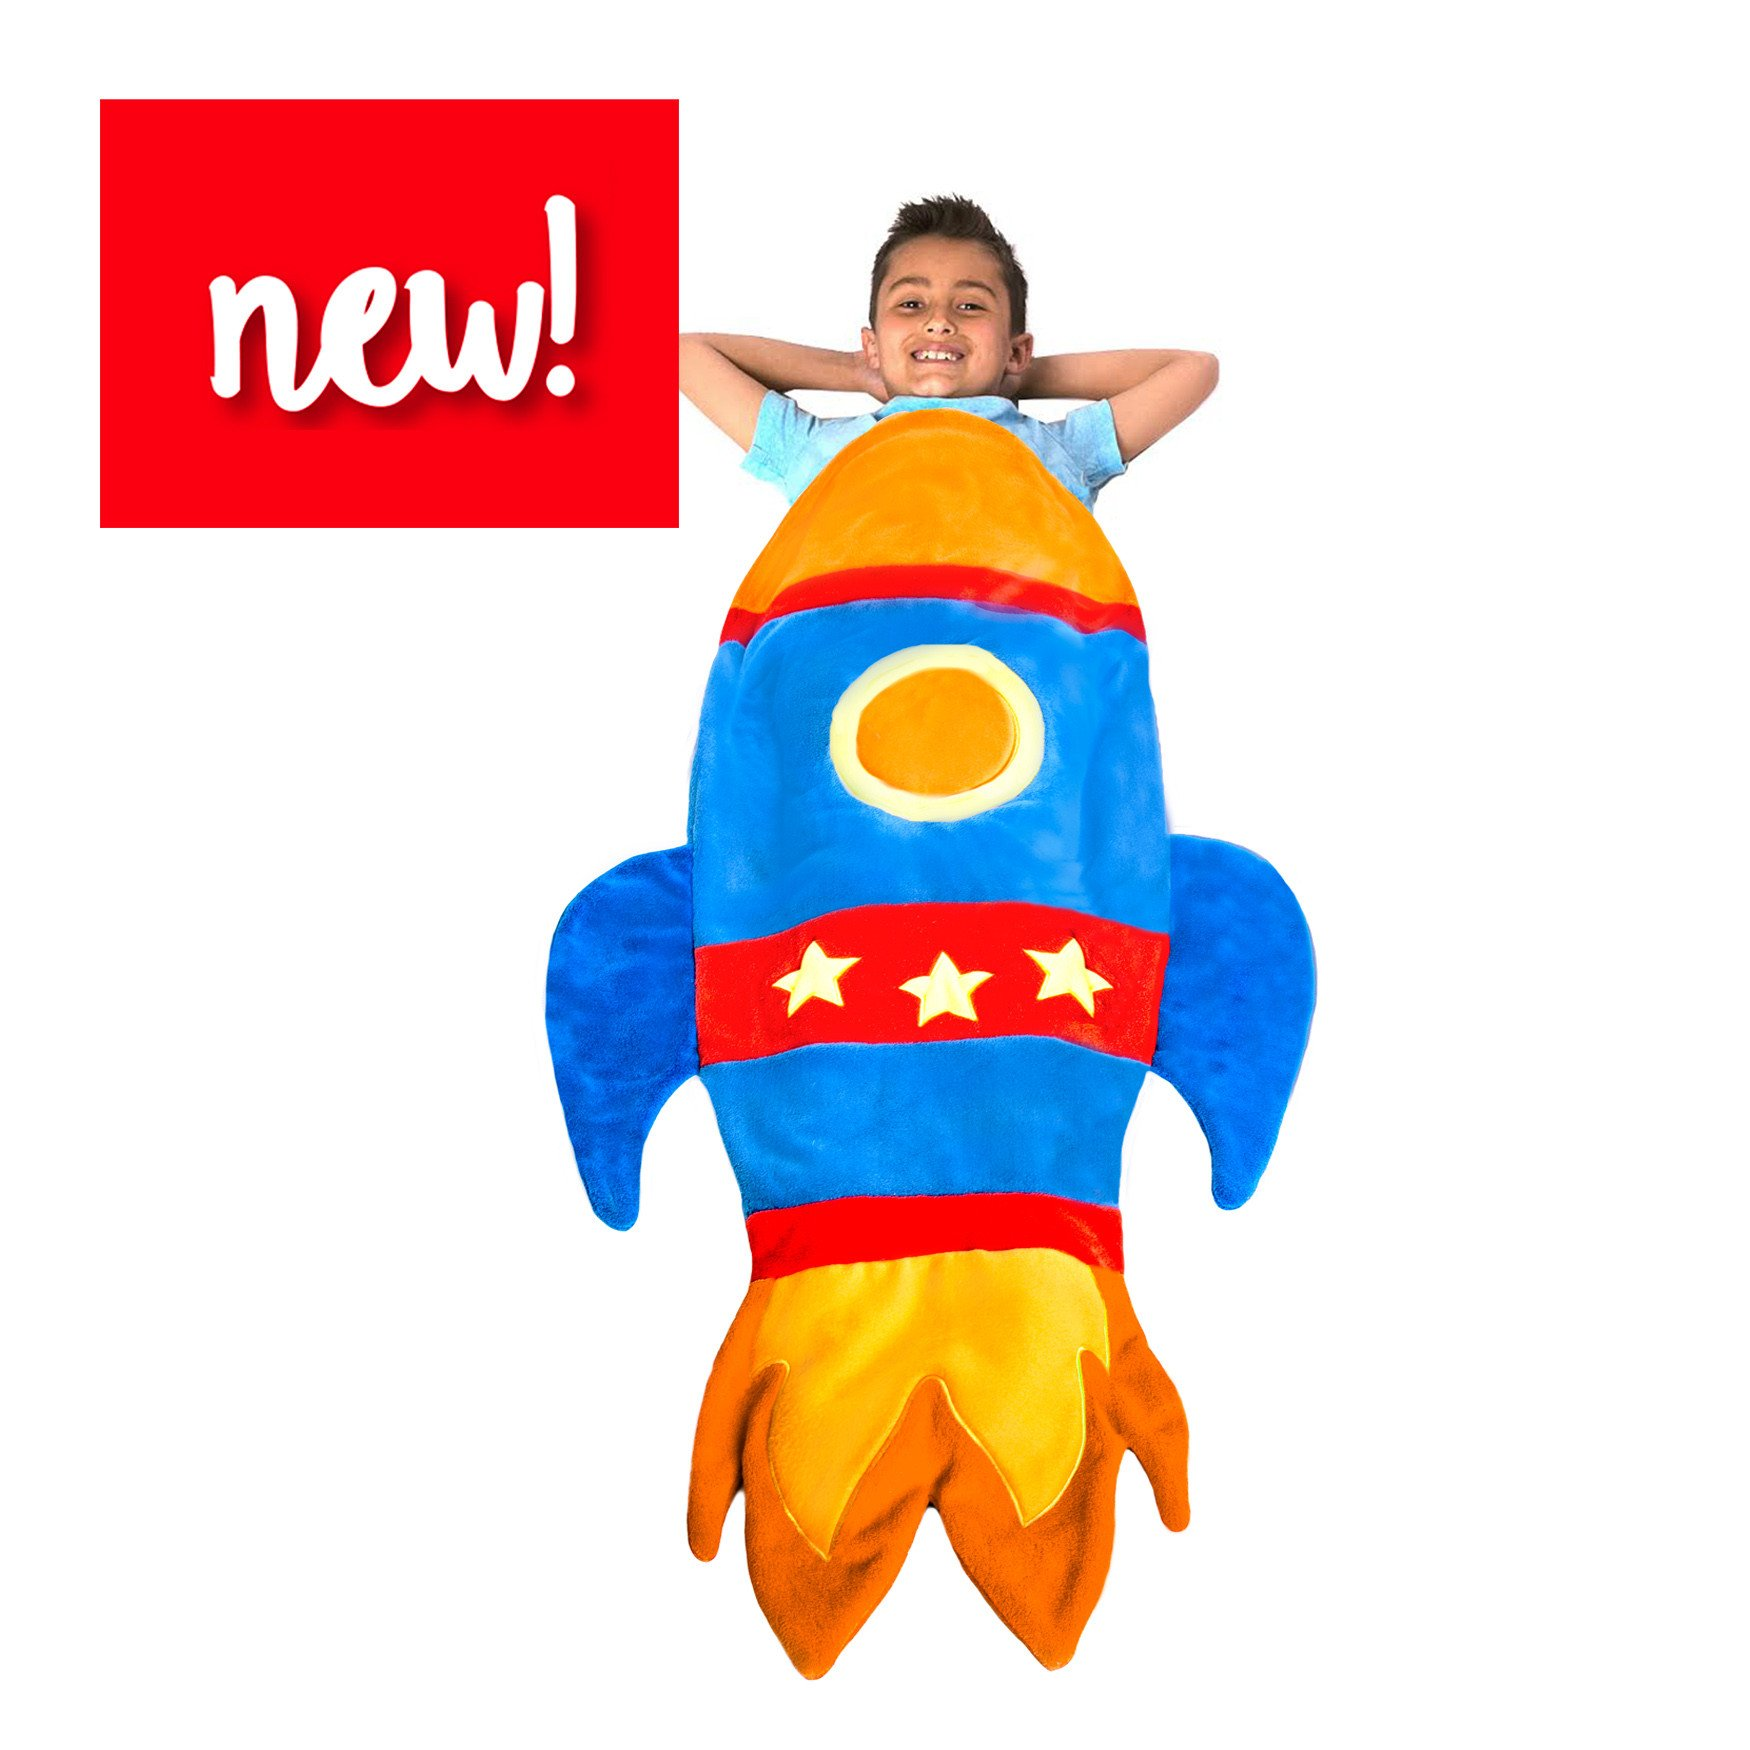 Rocket Blanket Budding Astronauts - Super Fun Design Lets Kids Climb Inside - Premium Quality Rocket Bedding in Blue - Favorite Birthday Gift Kids by Blankie Tails